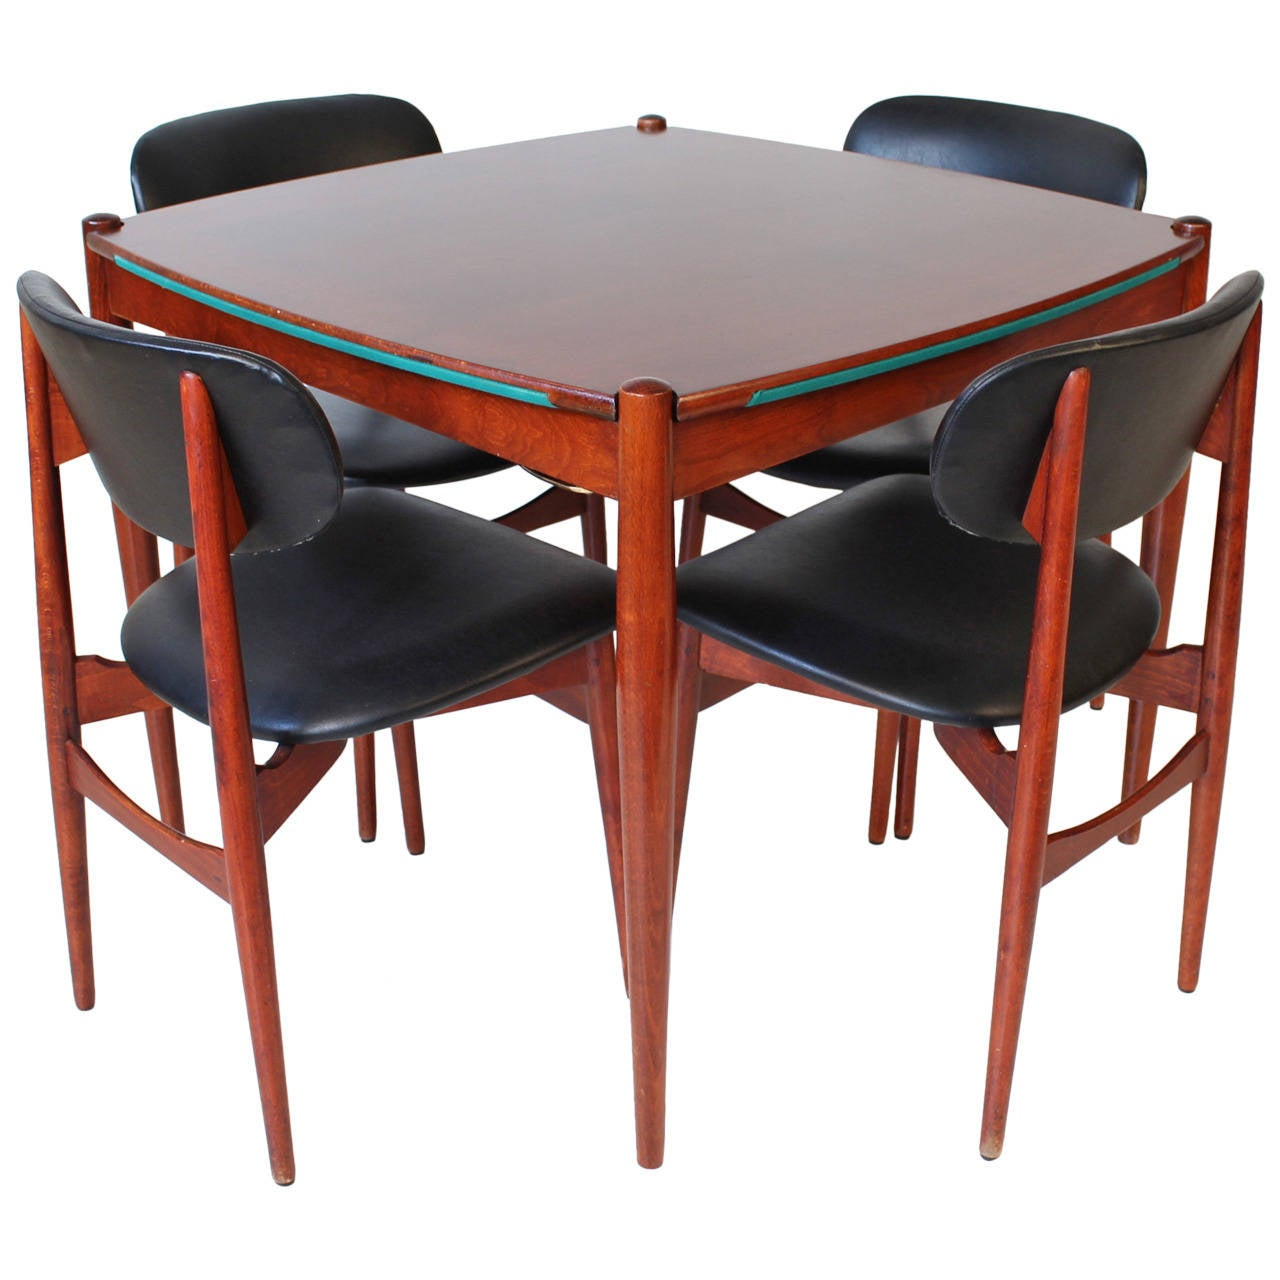 Italian mid century modern game table by gio ponti at 1stdibs for Contemporary game table and chairs